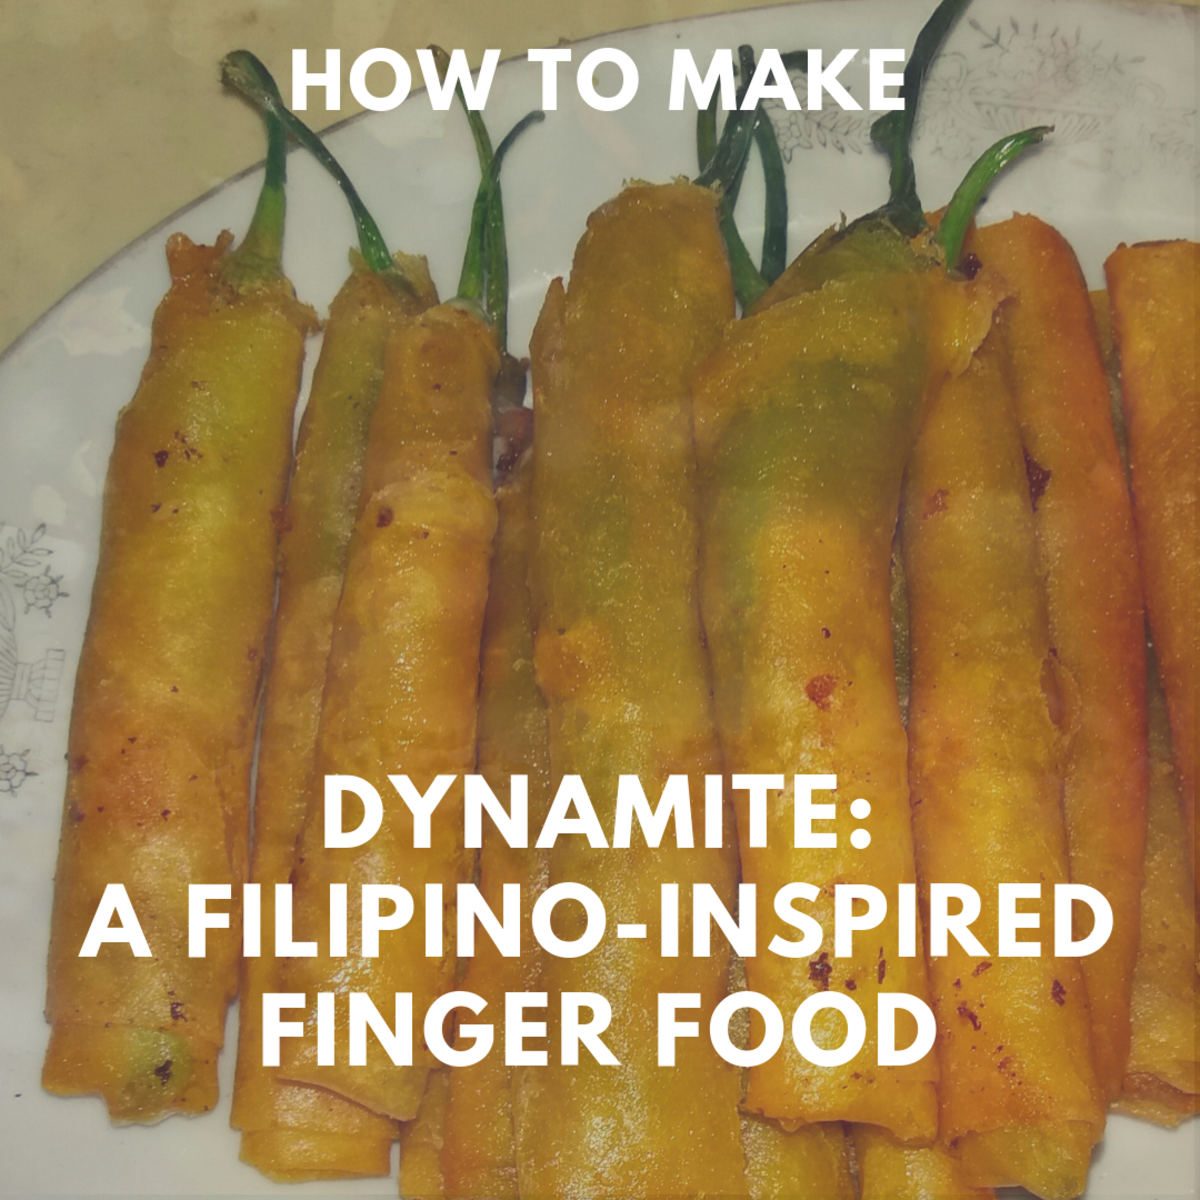 Learn how to make dynamite, a popular finger food.